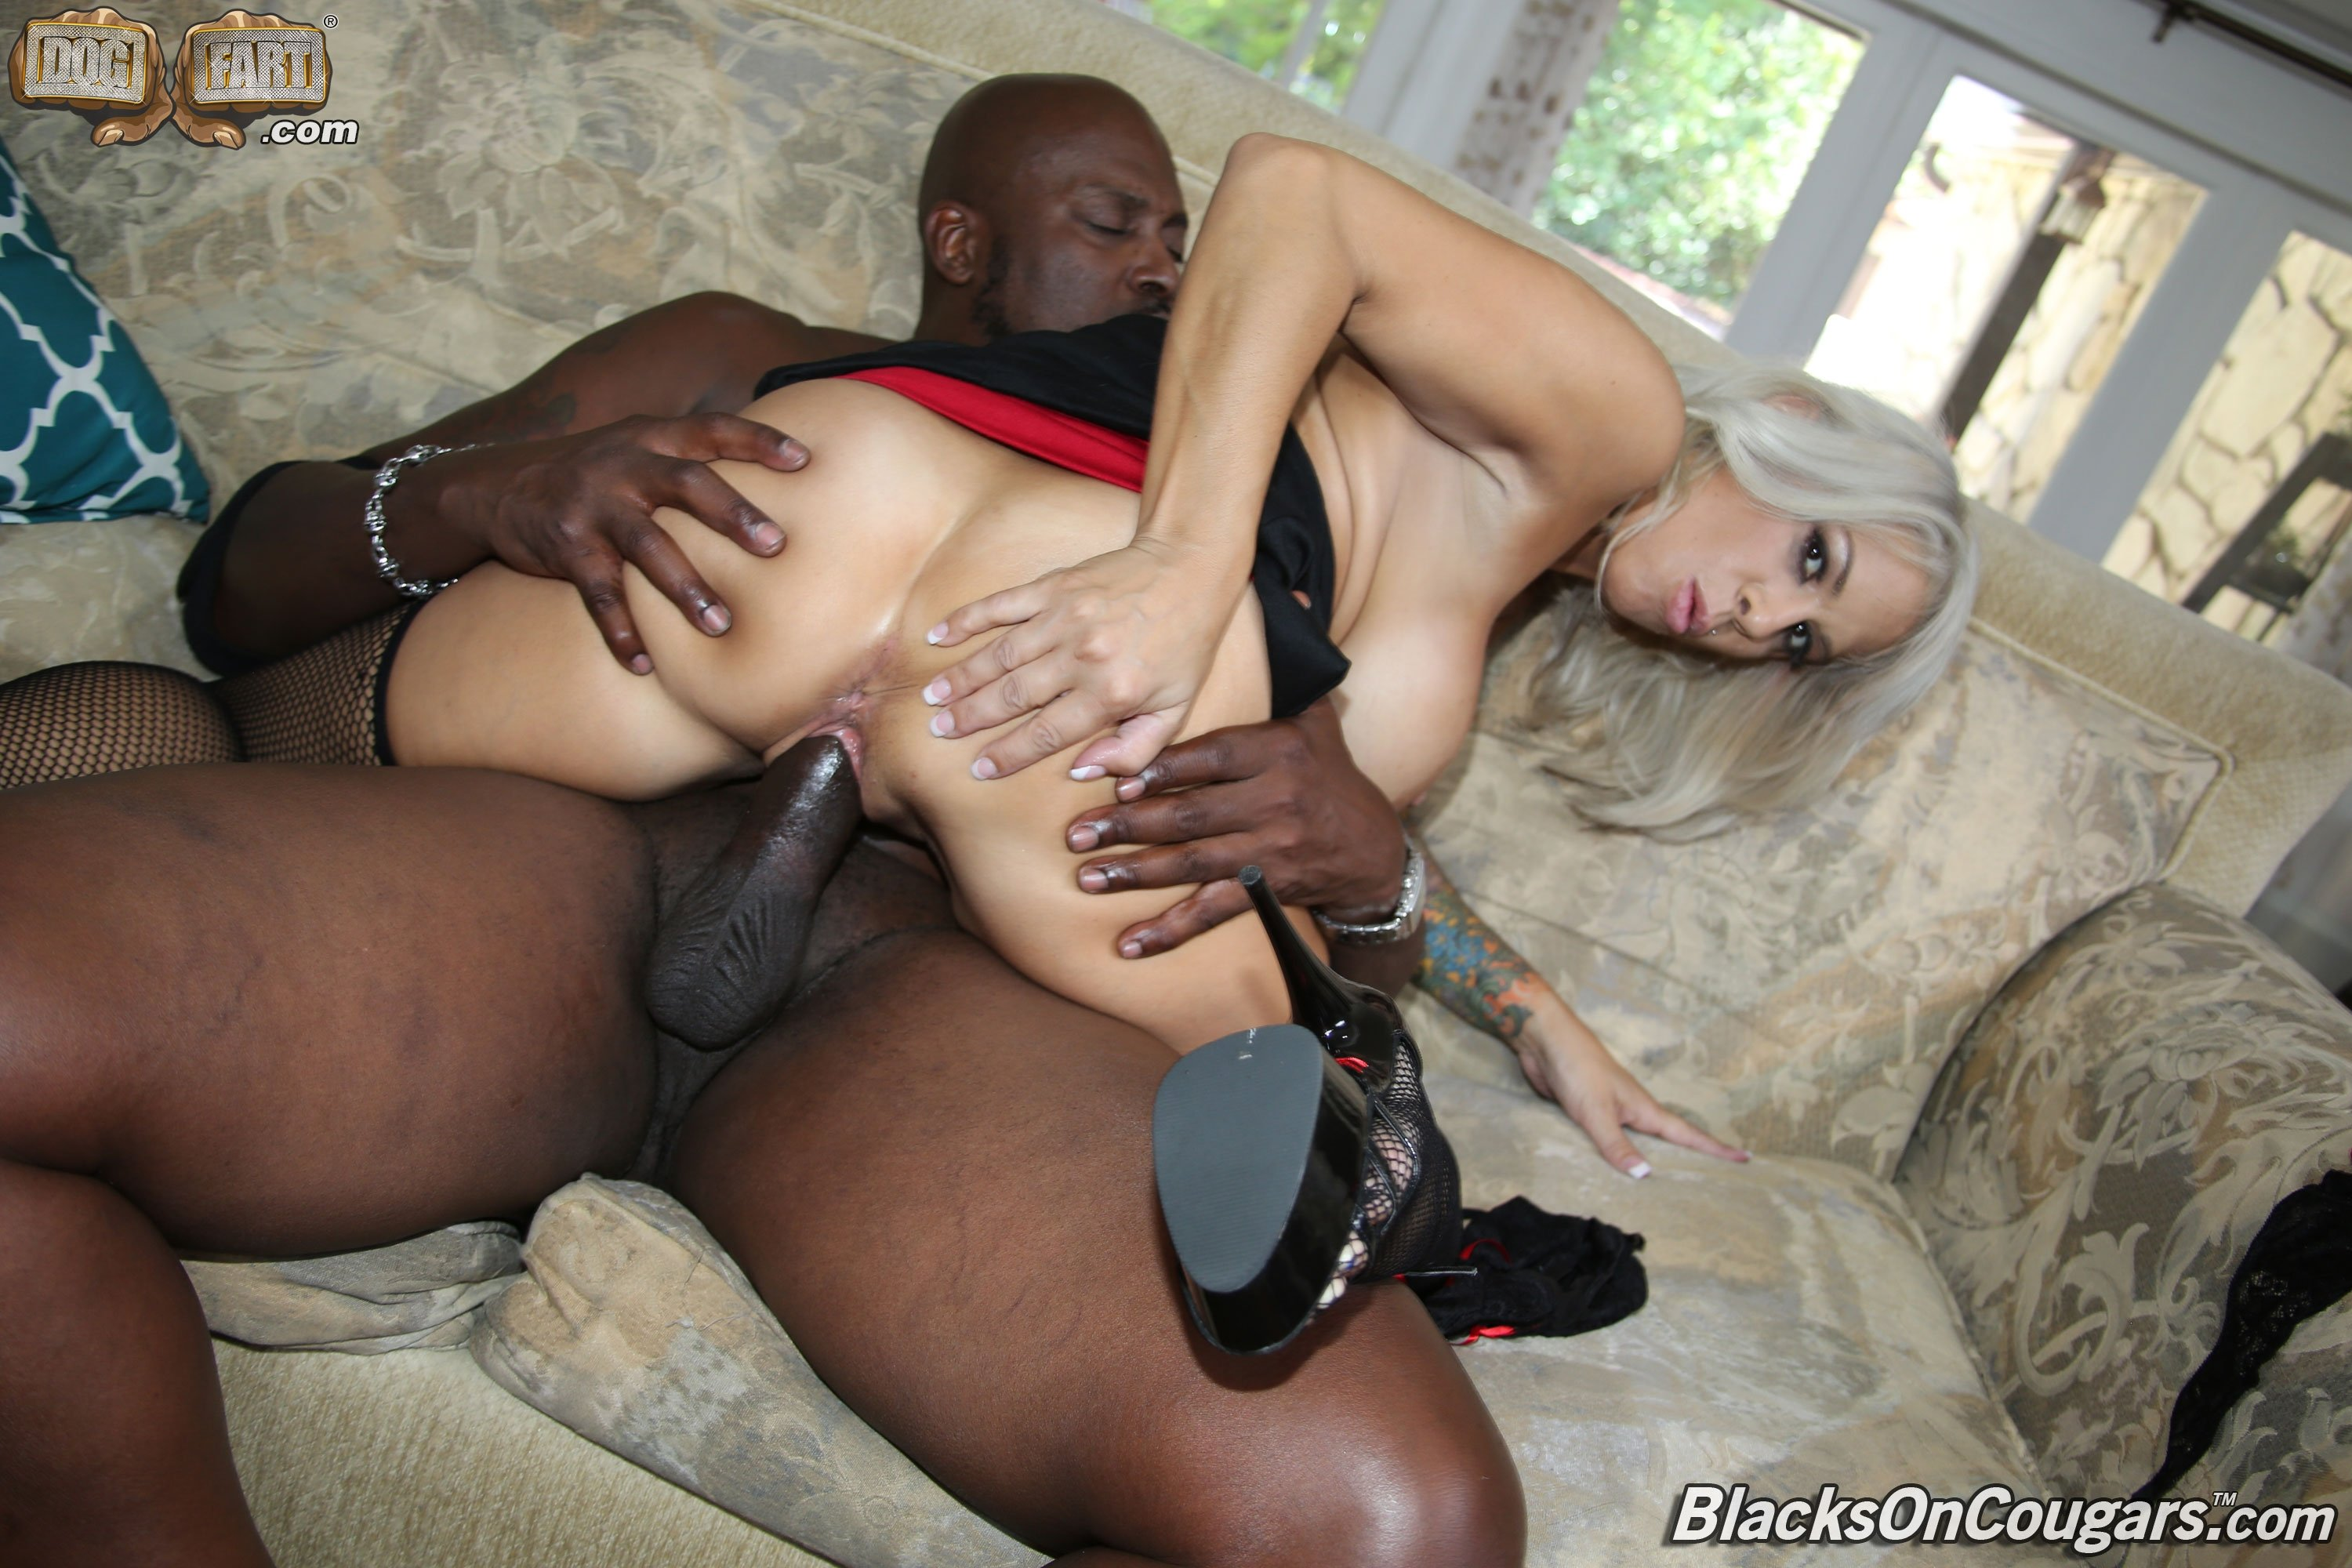 two black females having sex